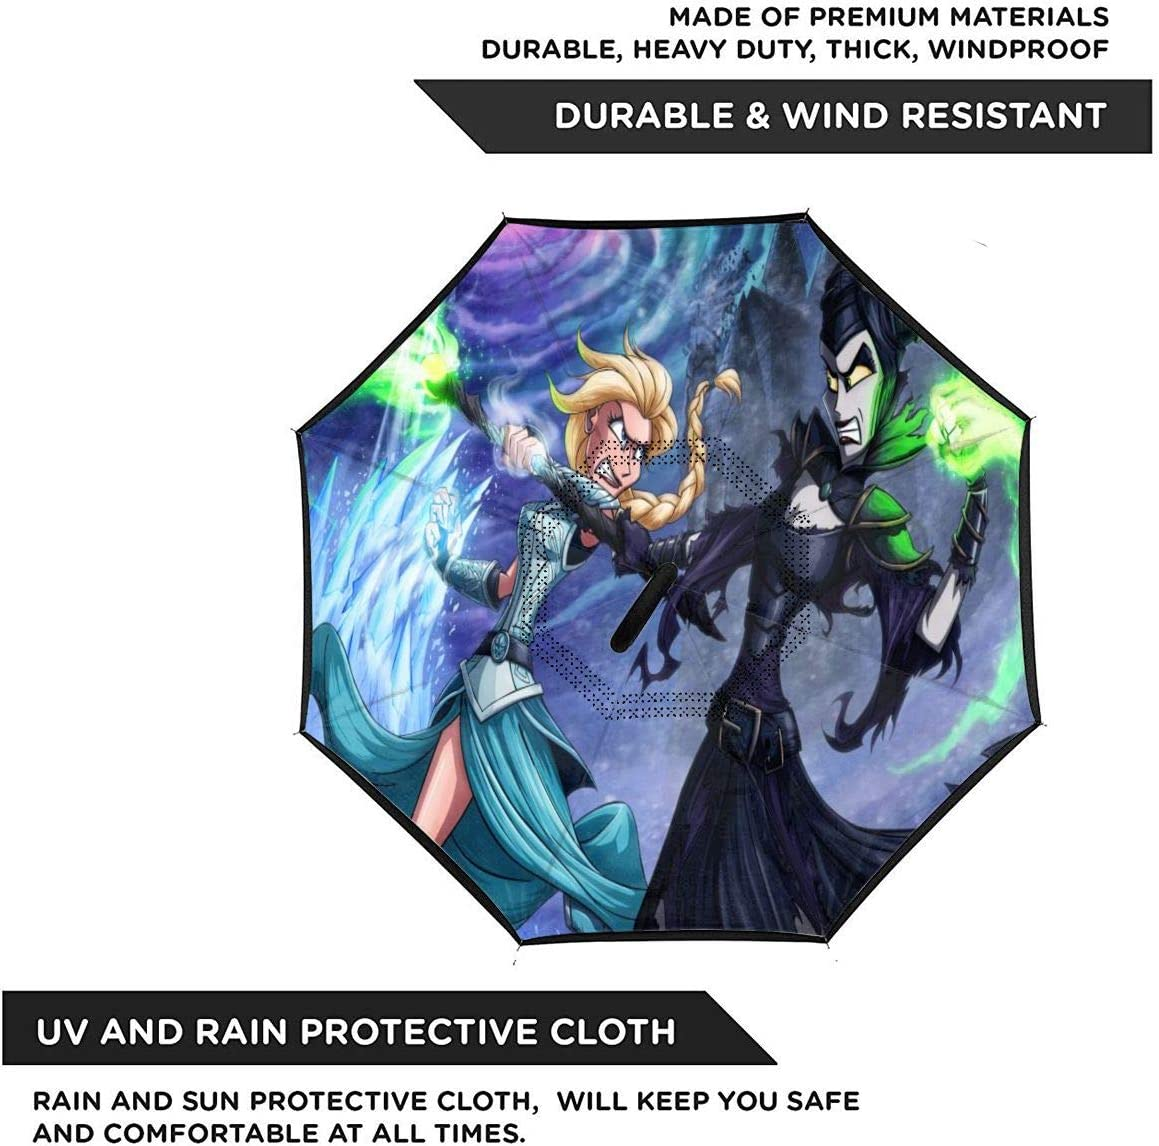 Anime Maleficent Car Reverse Umbrella With C-Shaped Handle UV Protection Inverted Folding Umbrellas Windproof And Rainproof Double Folding Inverted Umbrella